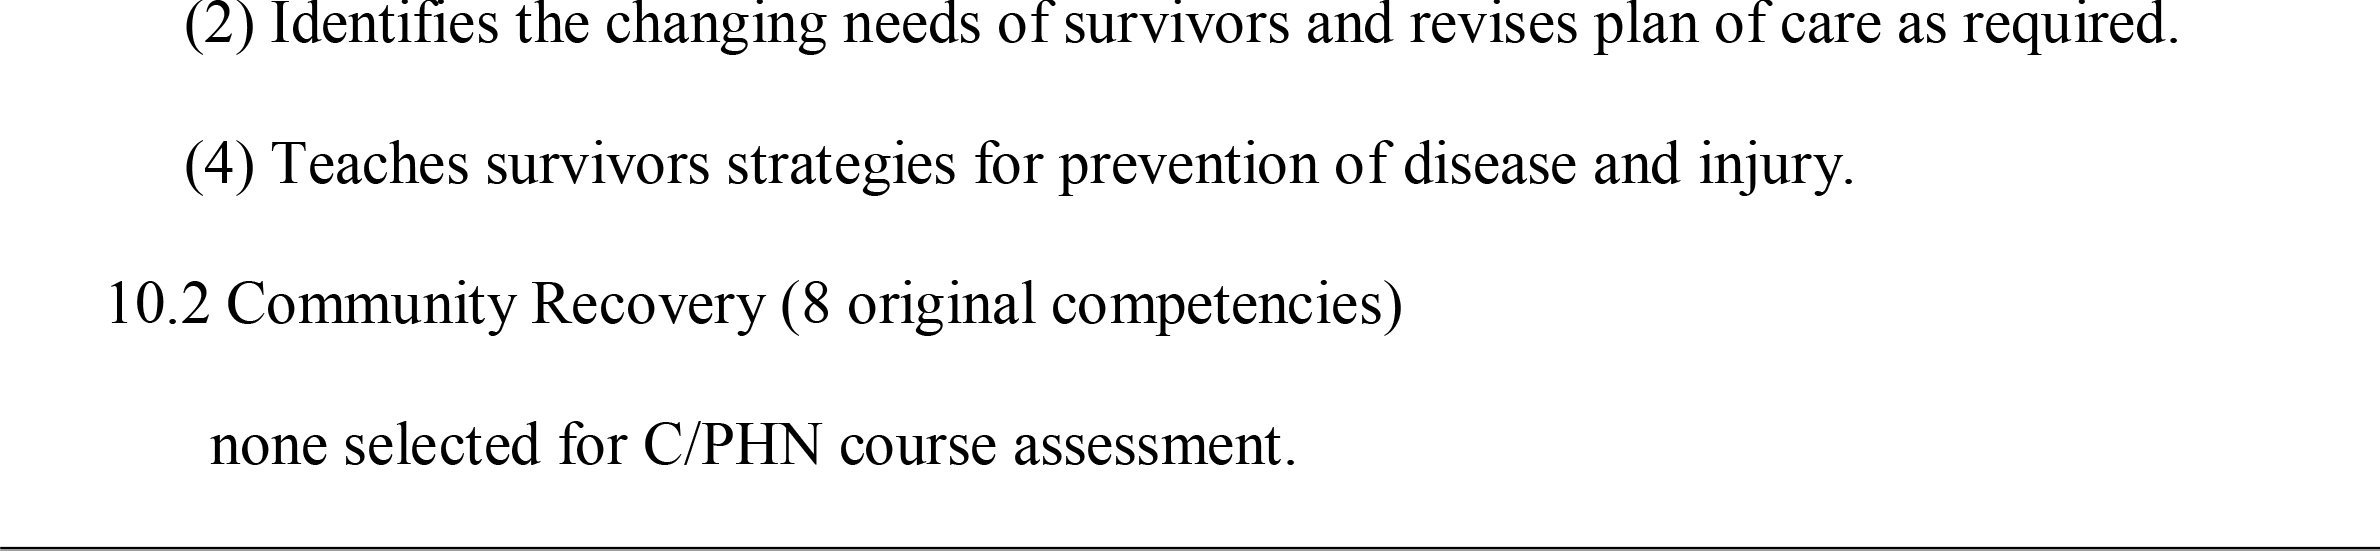 Baccalaureate Disaster Nursing Competencies which should be assessed as part of Community or Public Health Nursing (C/PHN) Courses